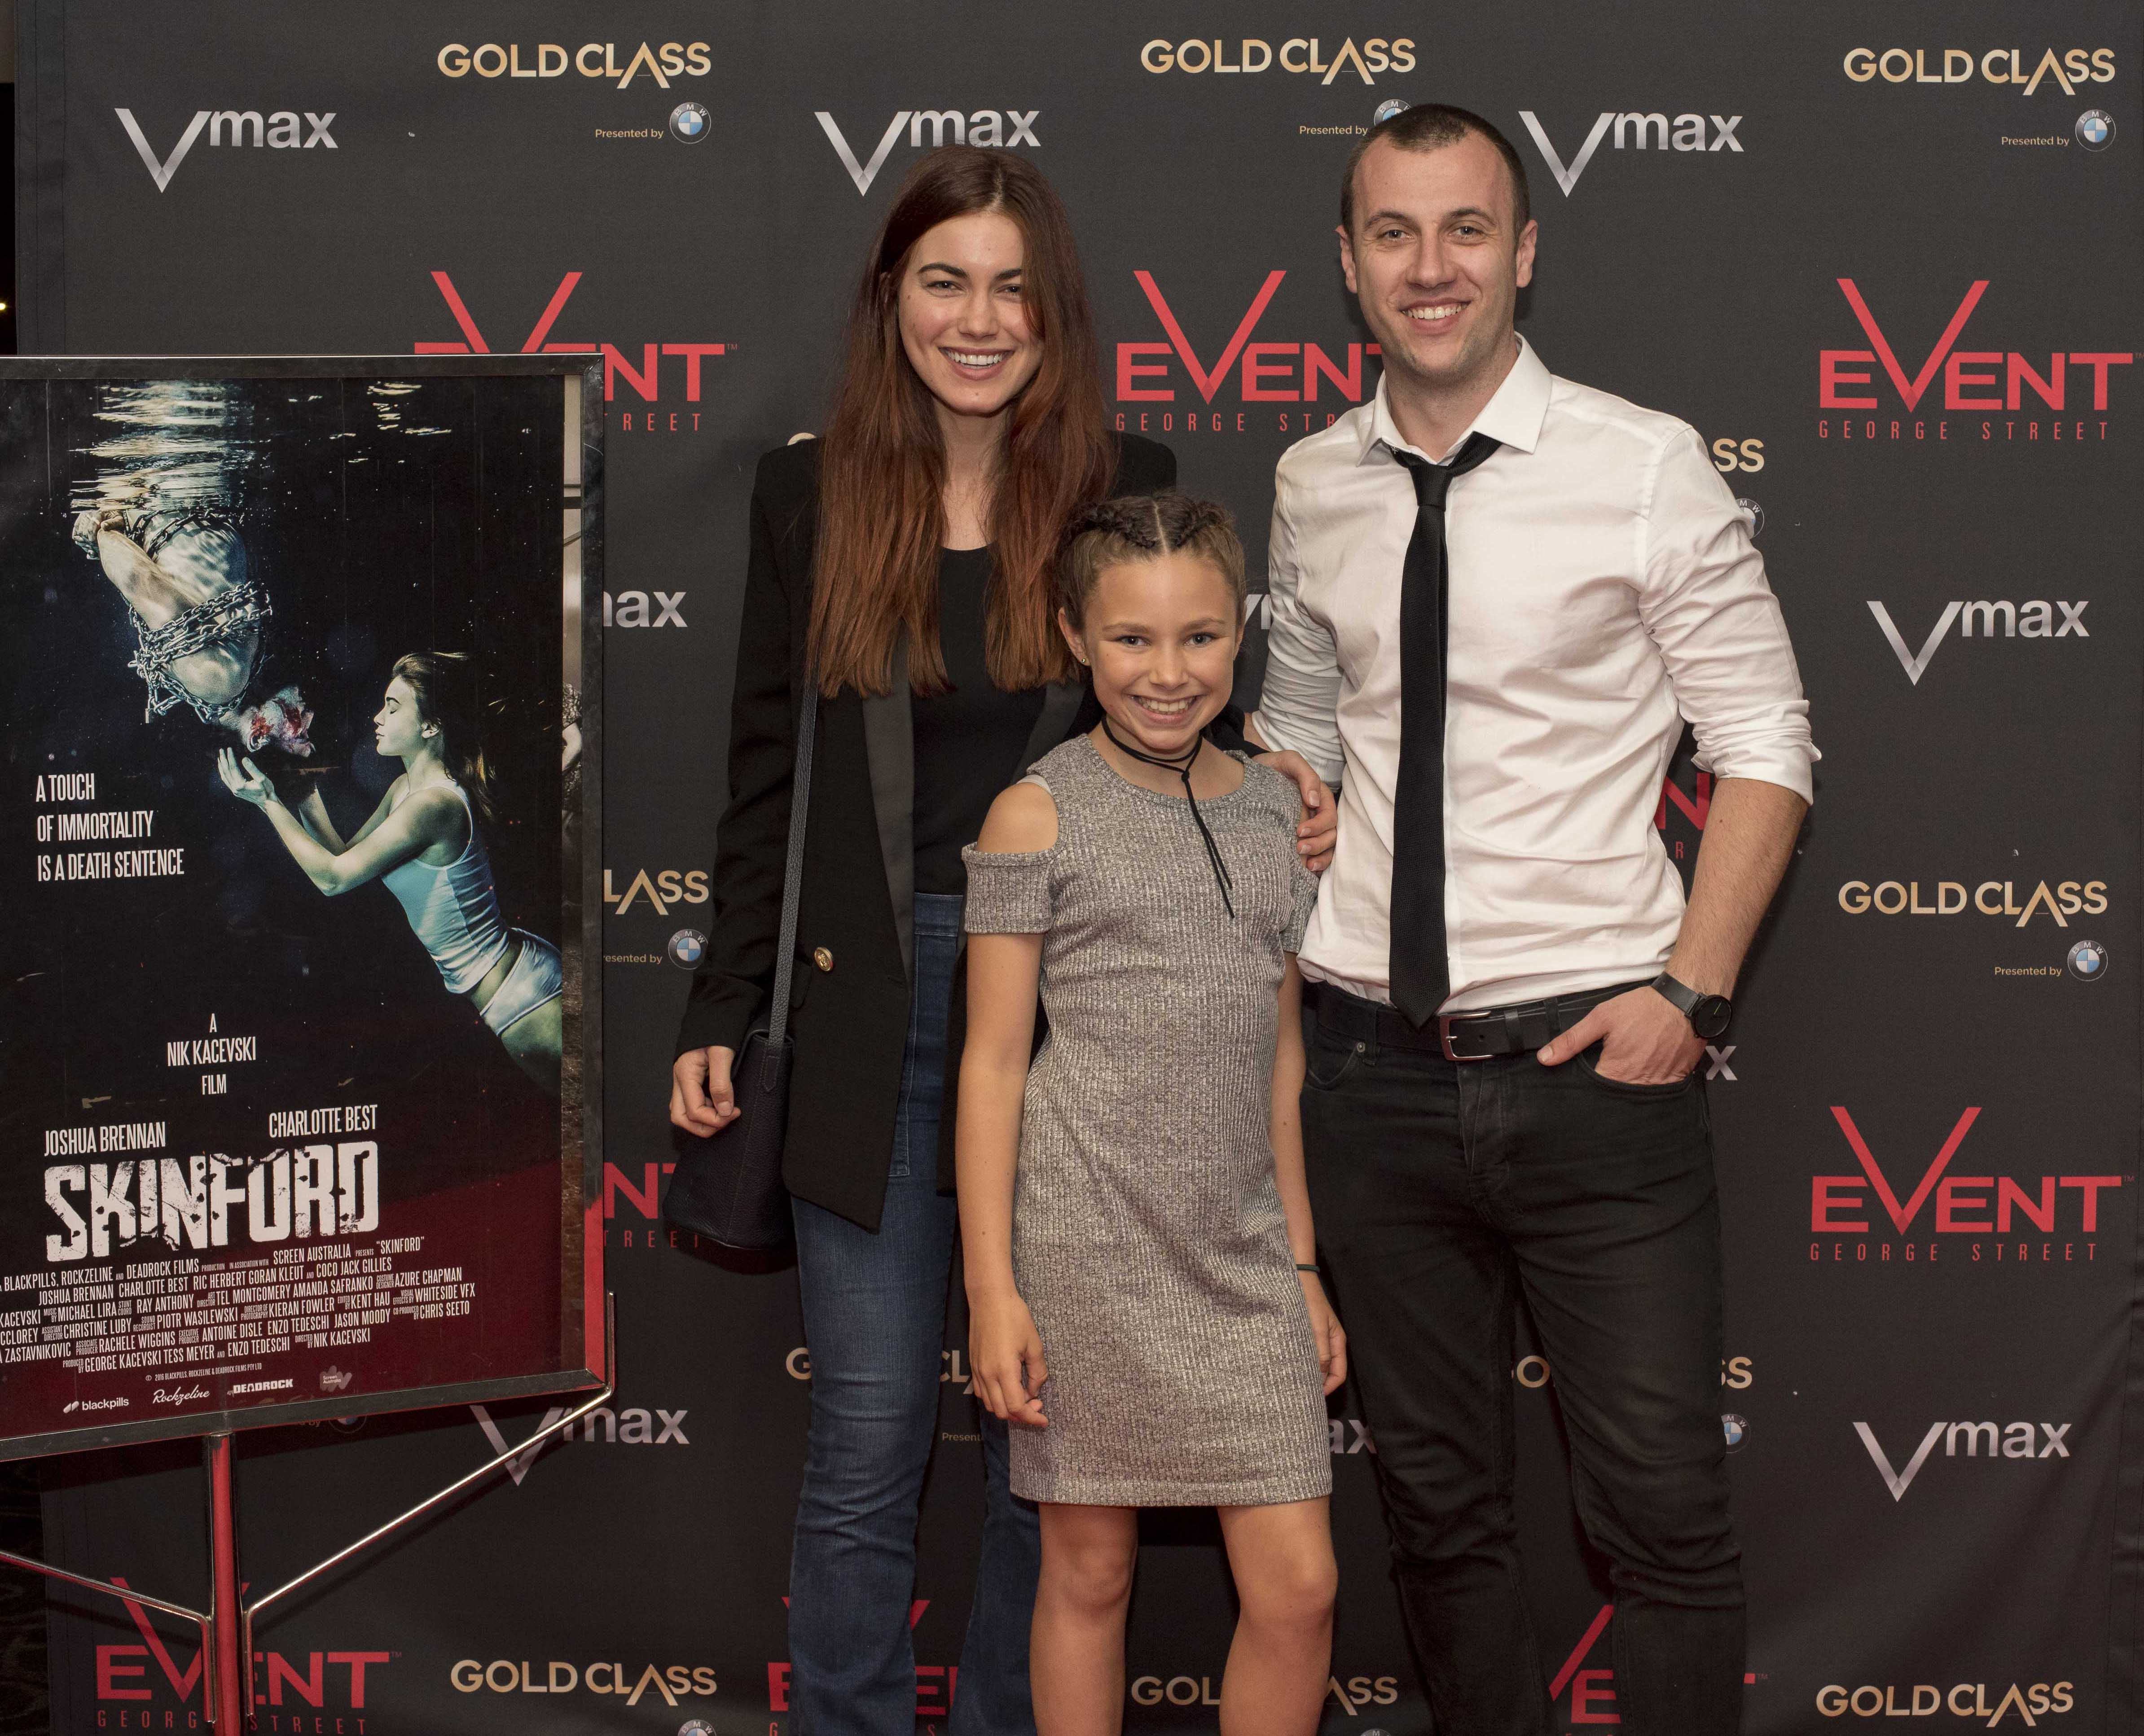 Skinford cast and crew screening, Sydney. (L to R) Charlotte Best, Coco Jack Gillies and Nik Kacevski.